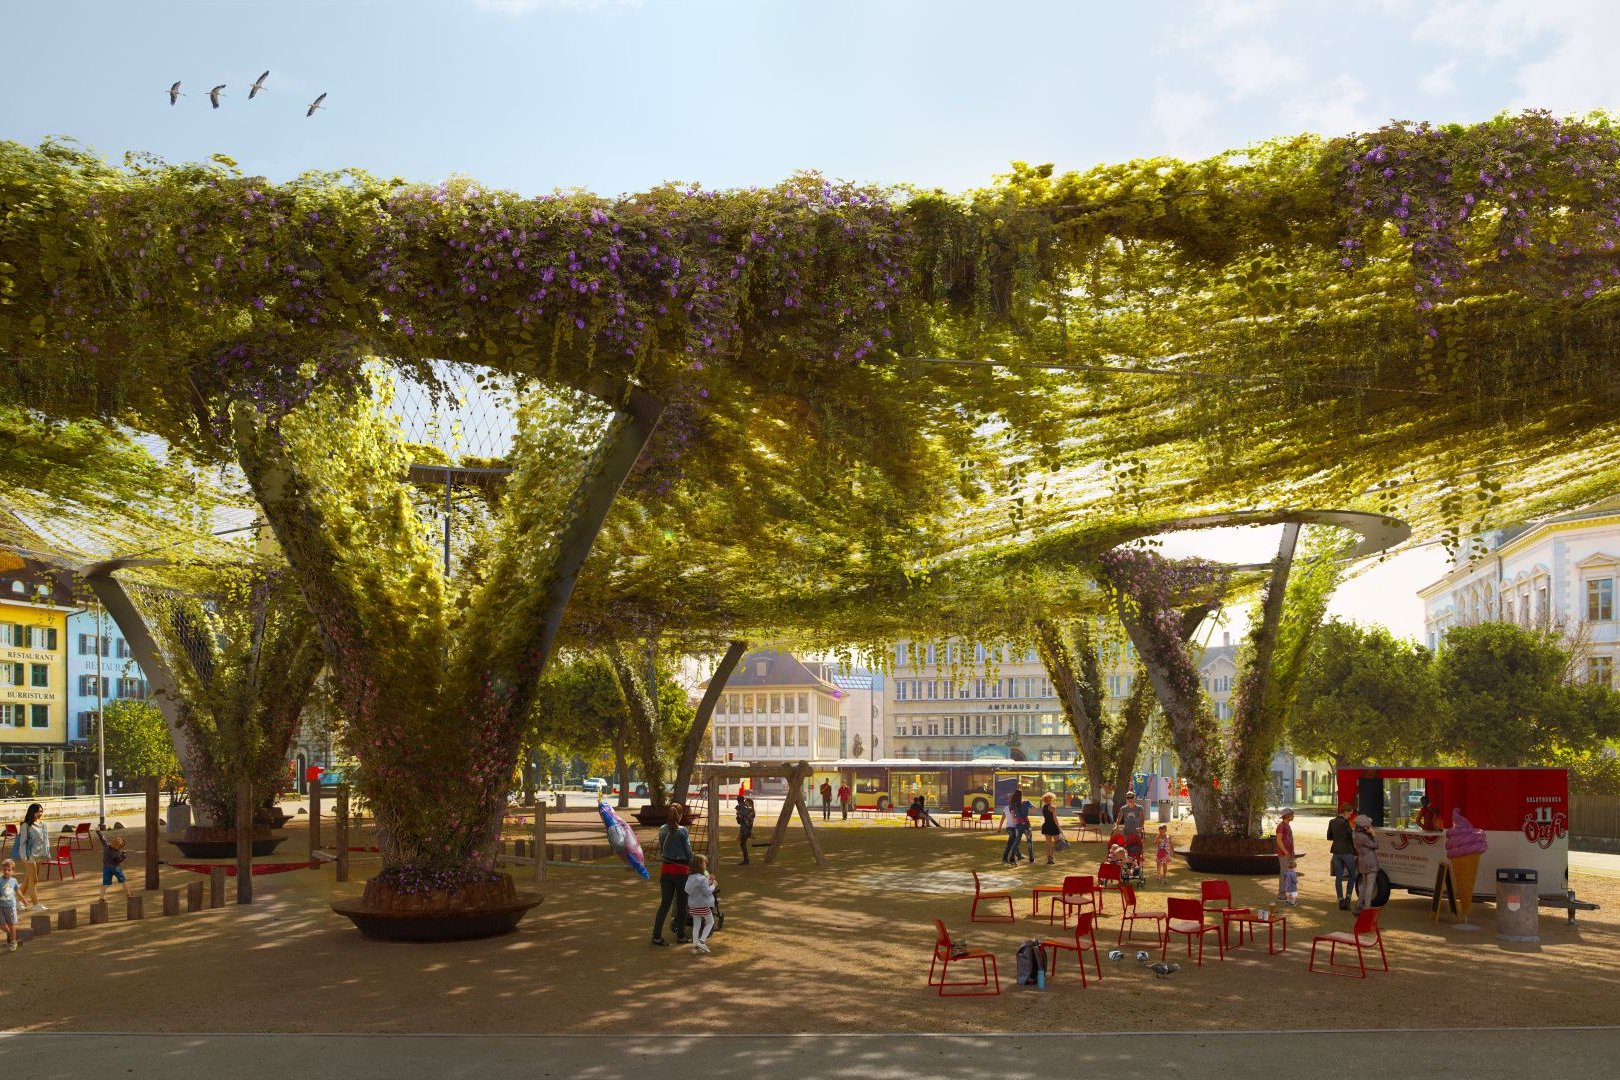 Visualisation of a possible greening on the Roter Platz in Solothurn